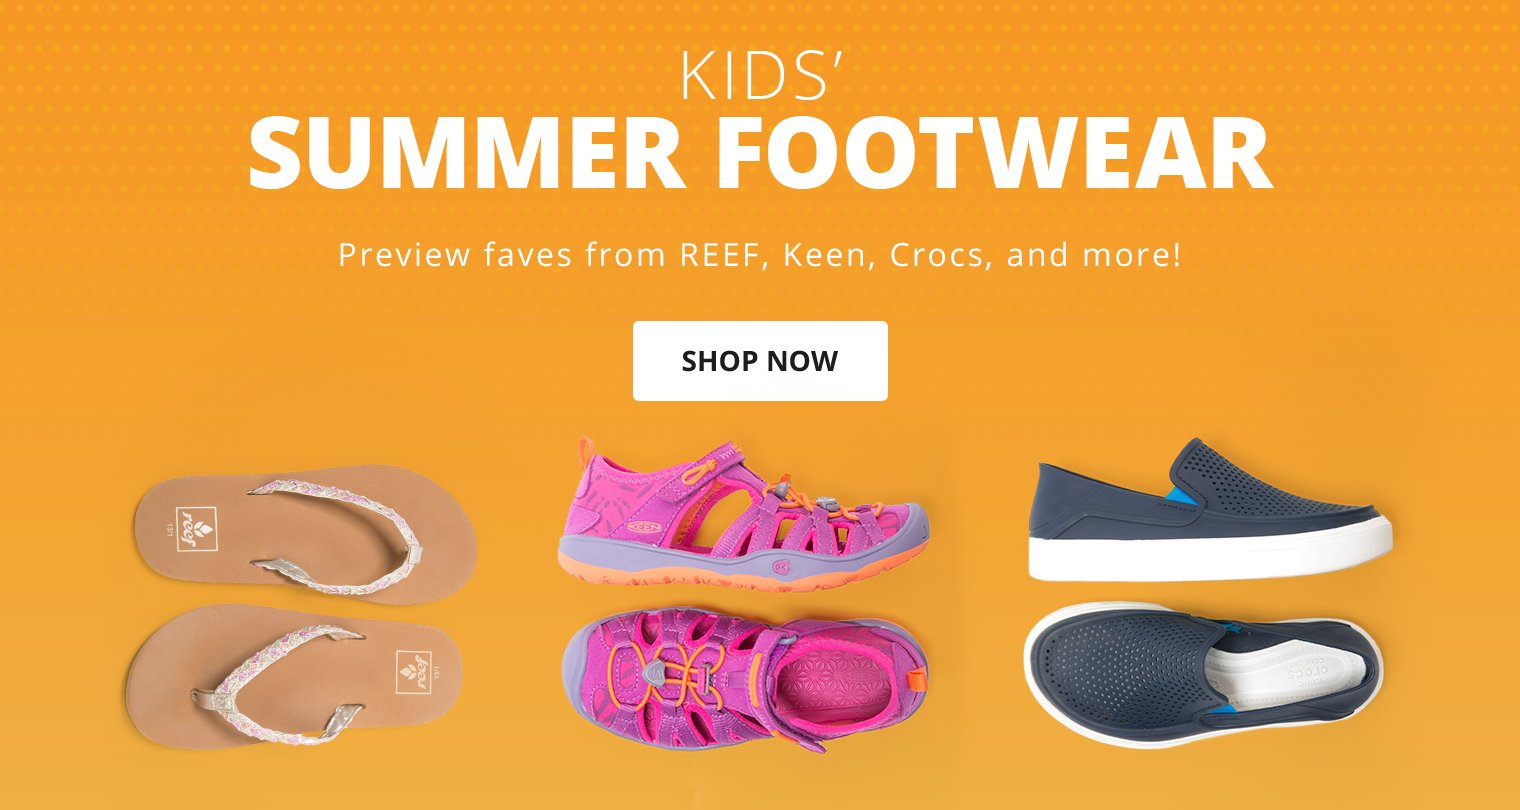 Kids Summer Footwear. Preview faves from REEF, Keen, Crocs, and more! Shop Now.